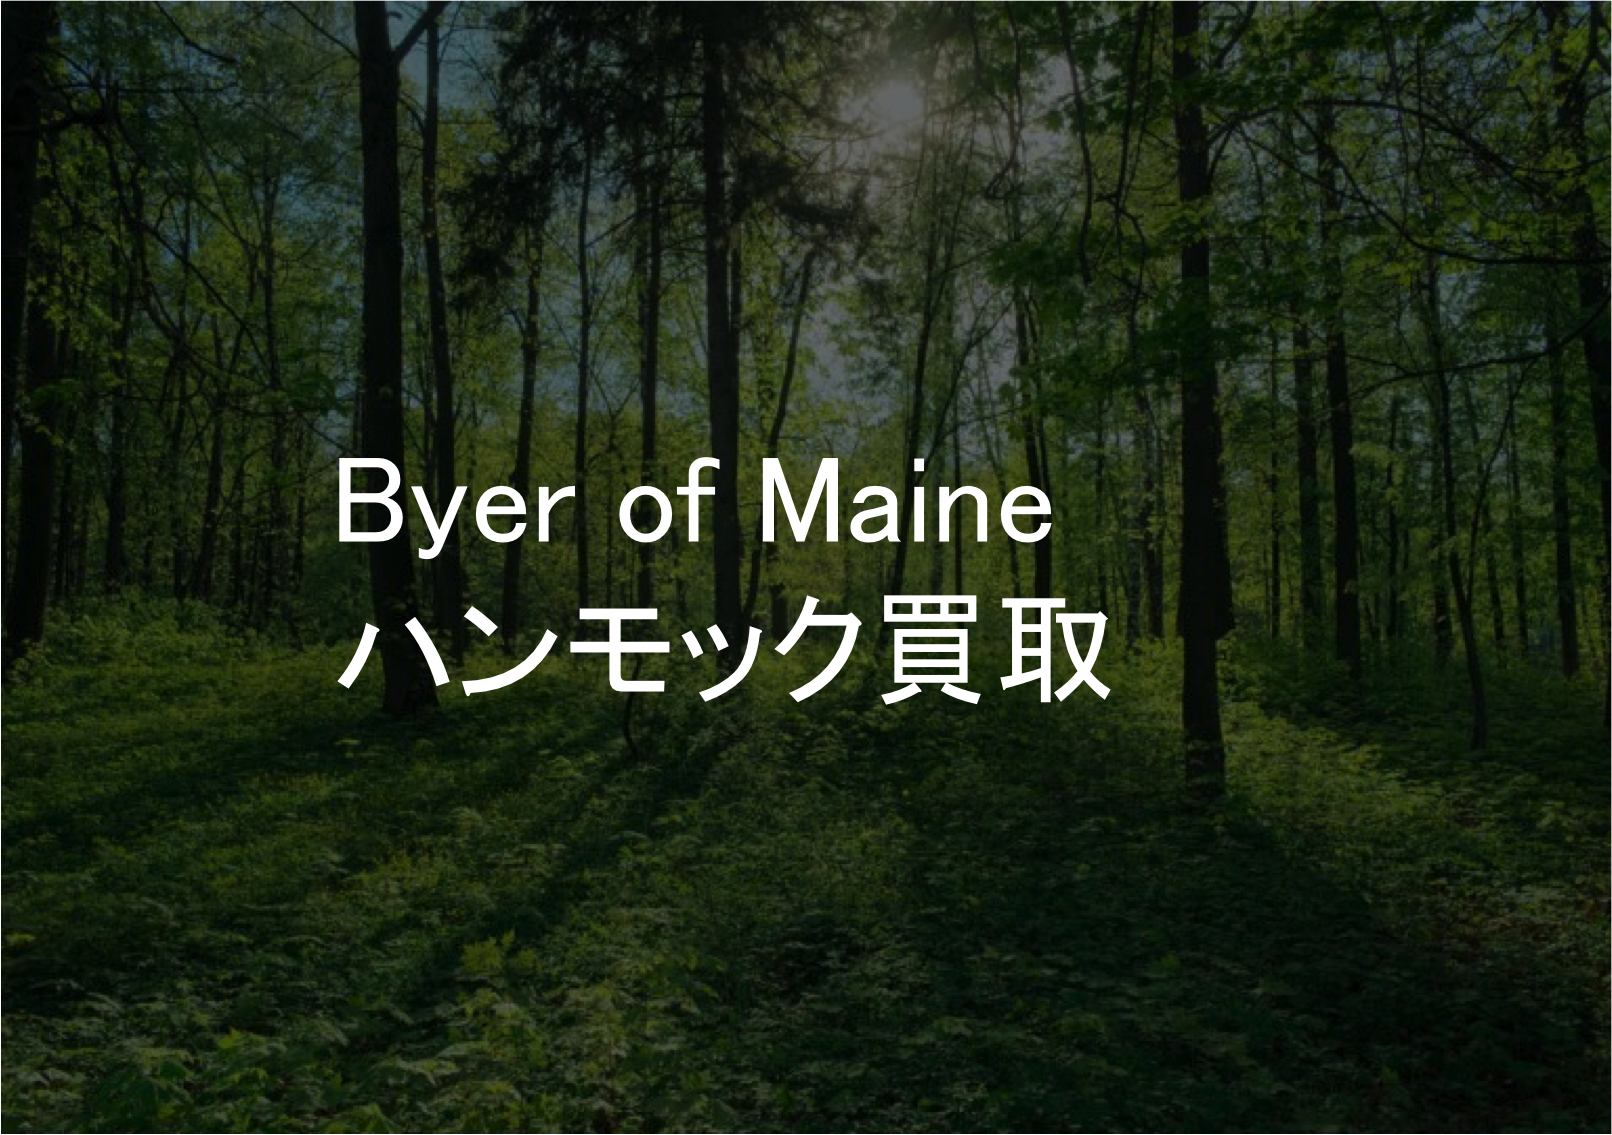 Byer of Maineハンモック買取なら